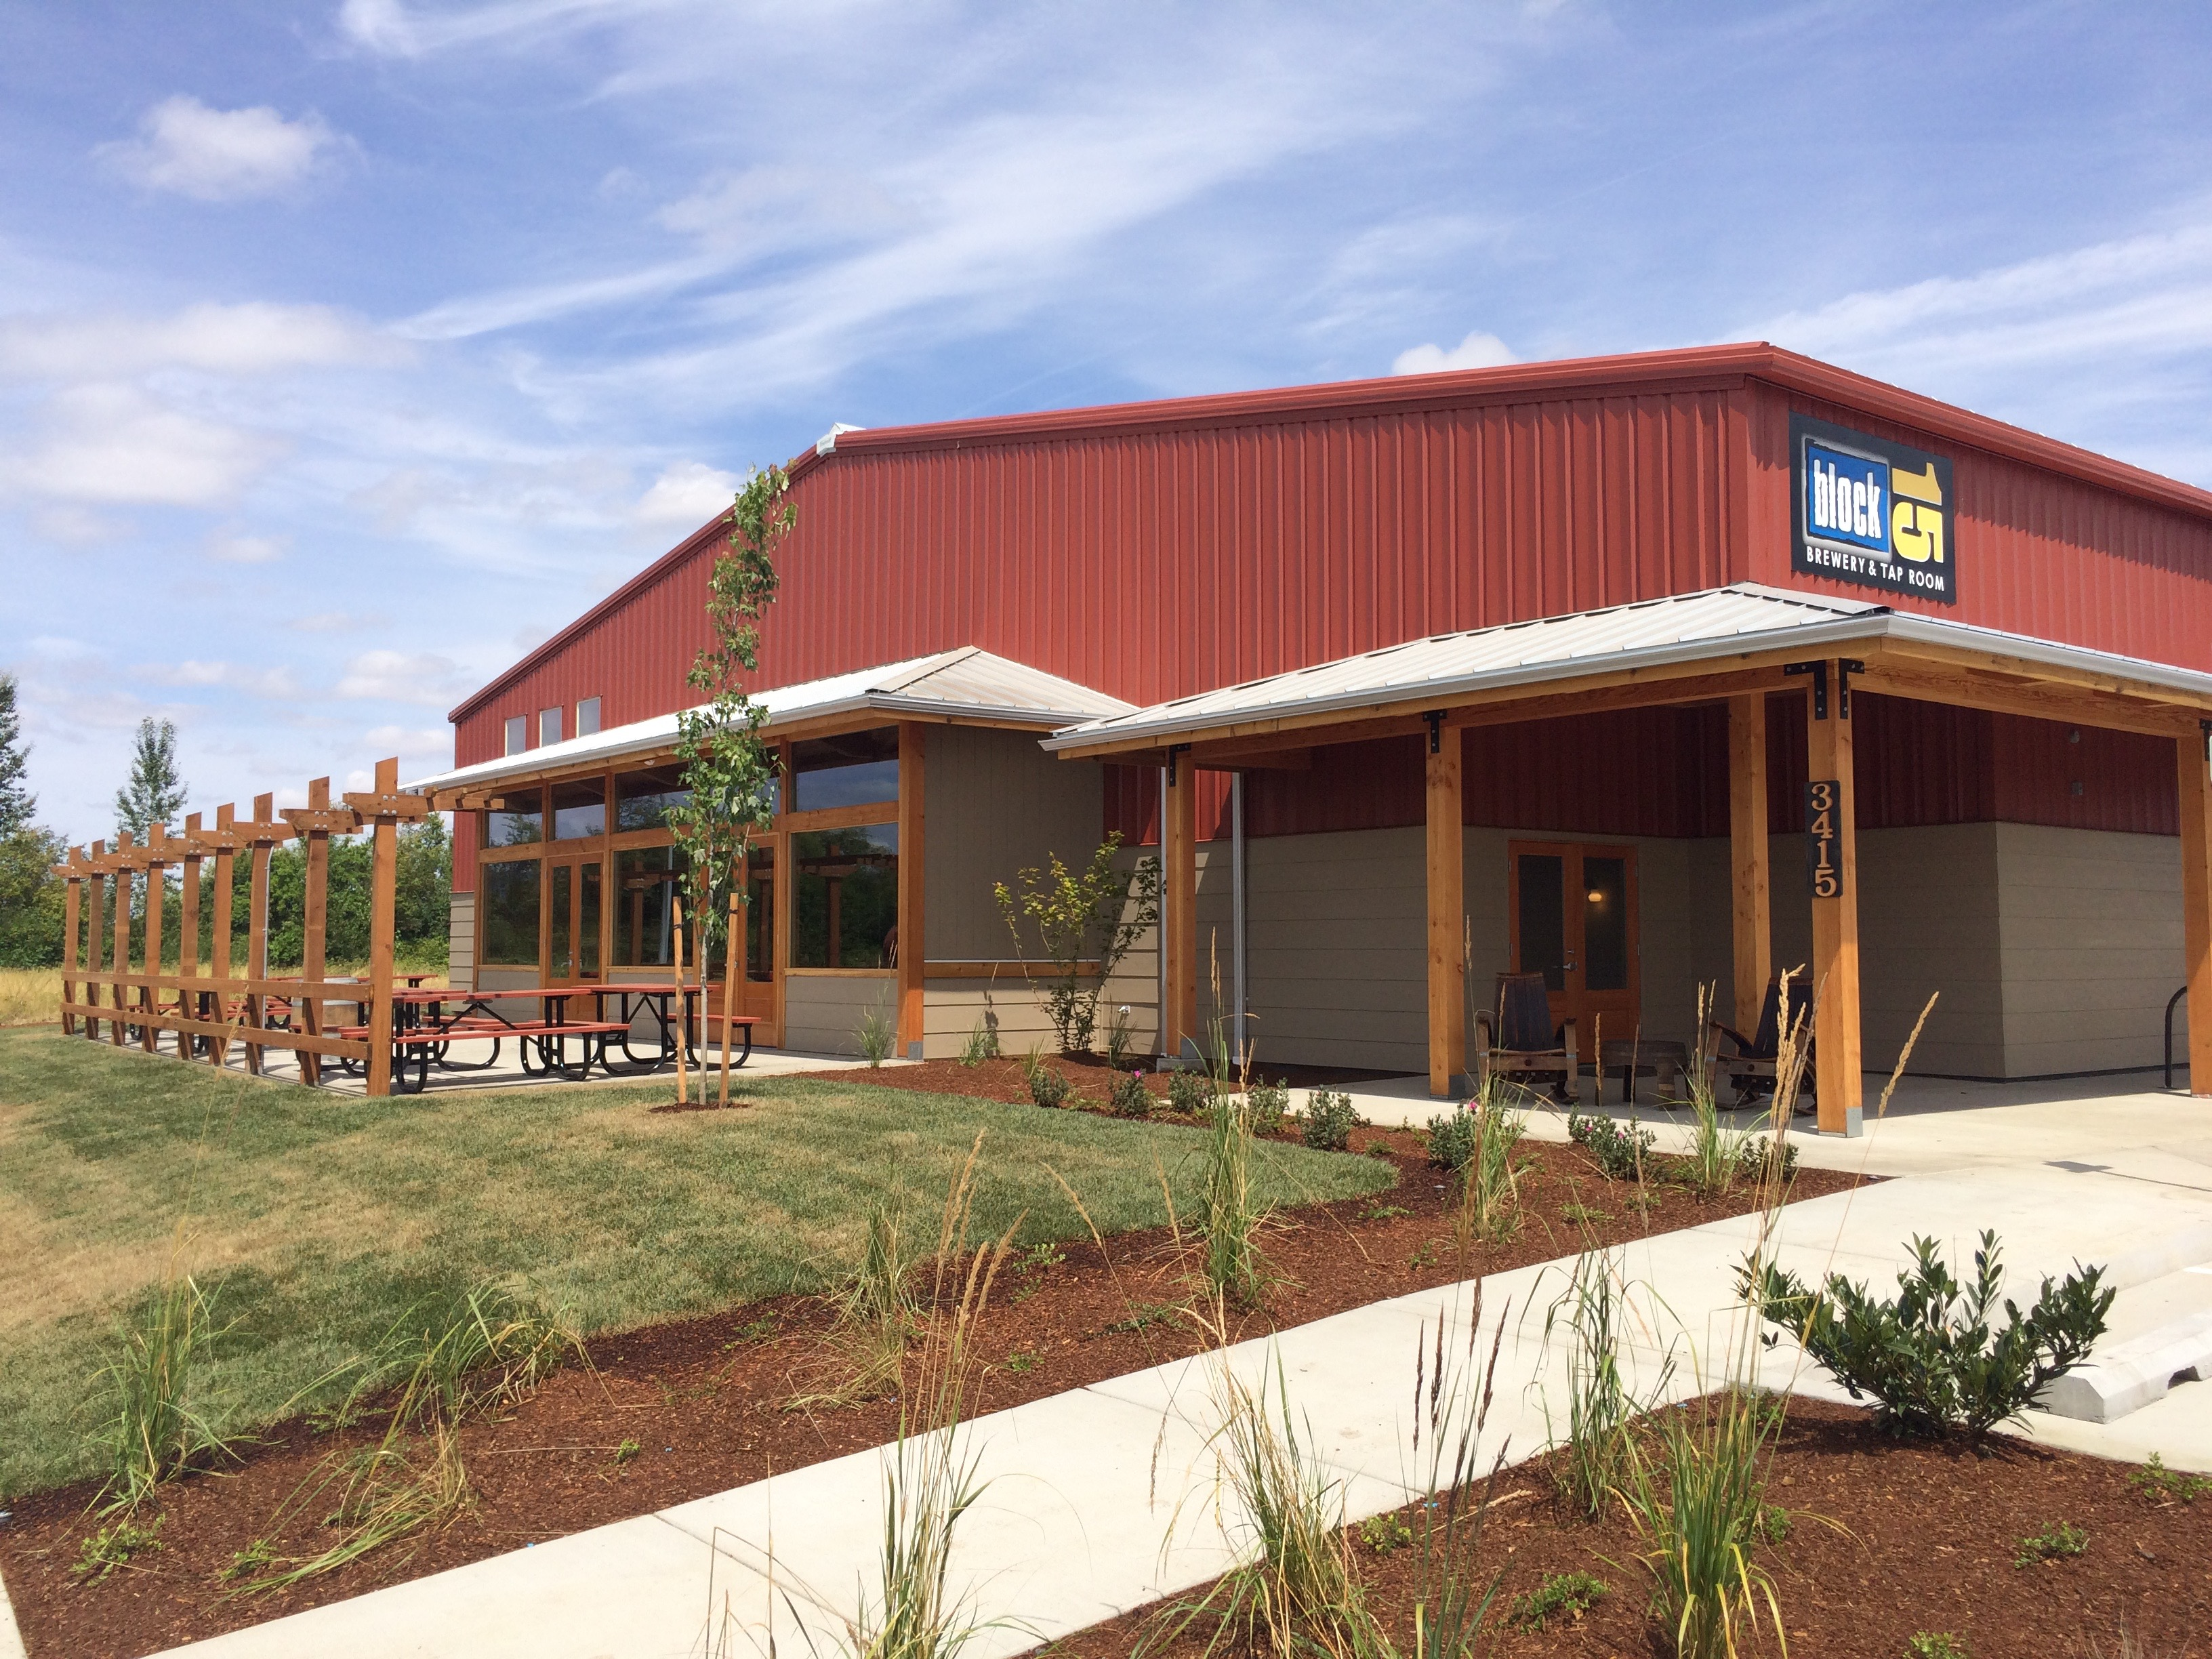 Block 15 Brewery Amp Tap Room To Open On Monday